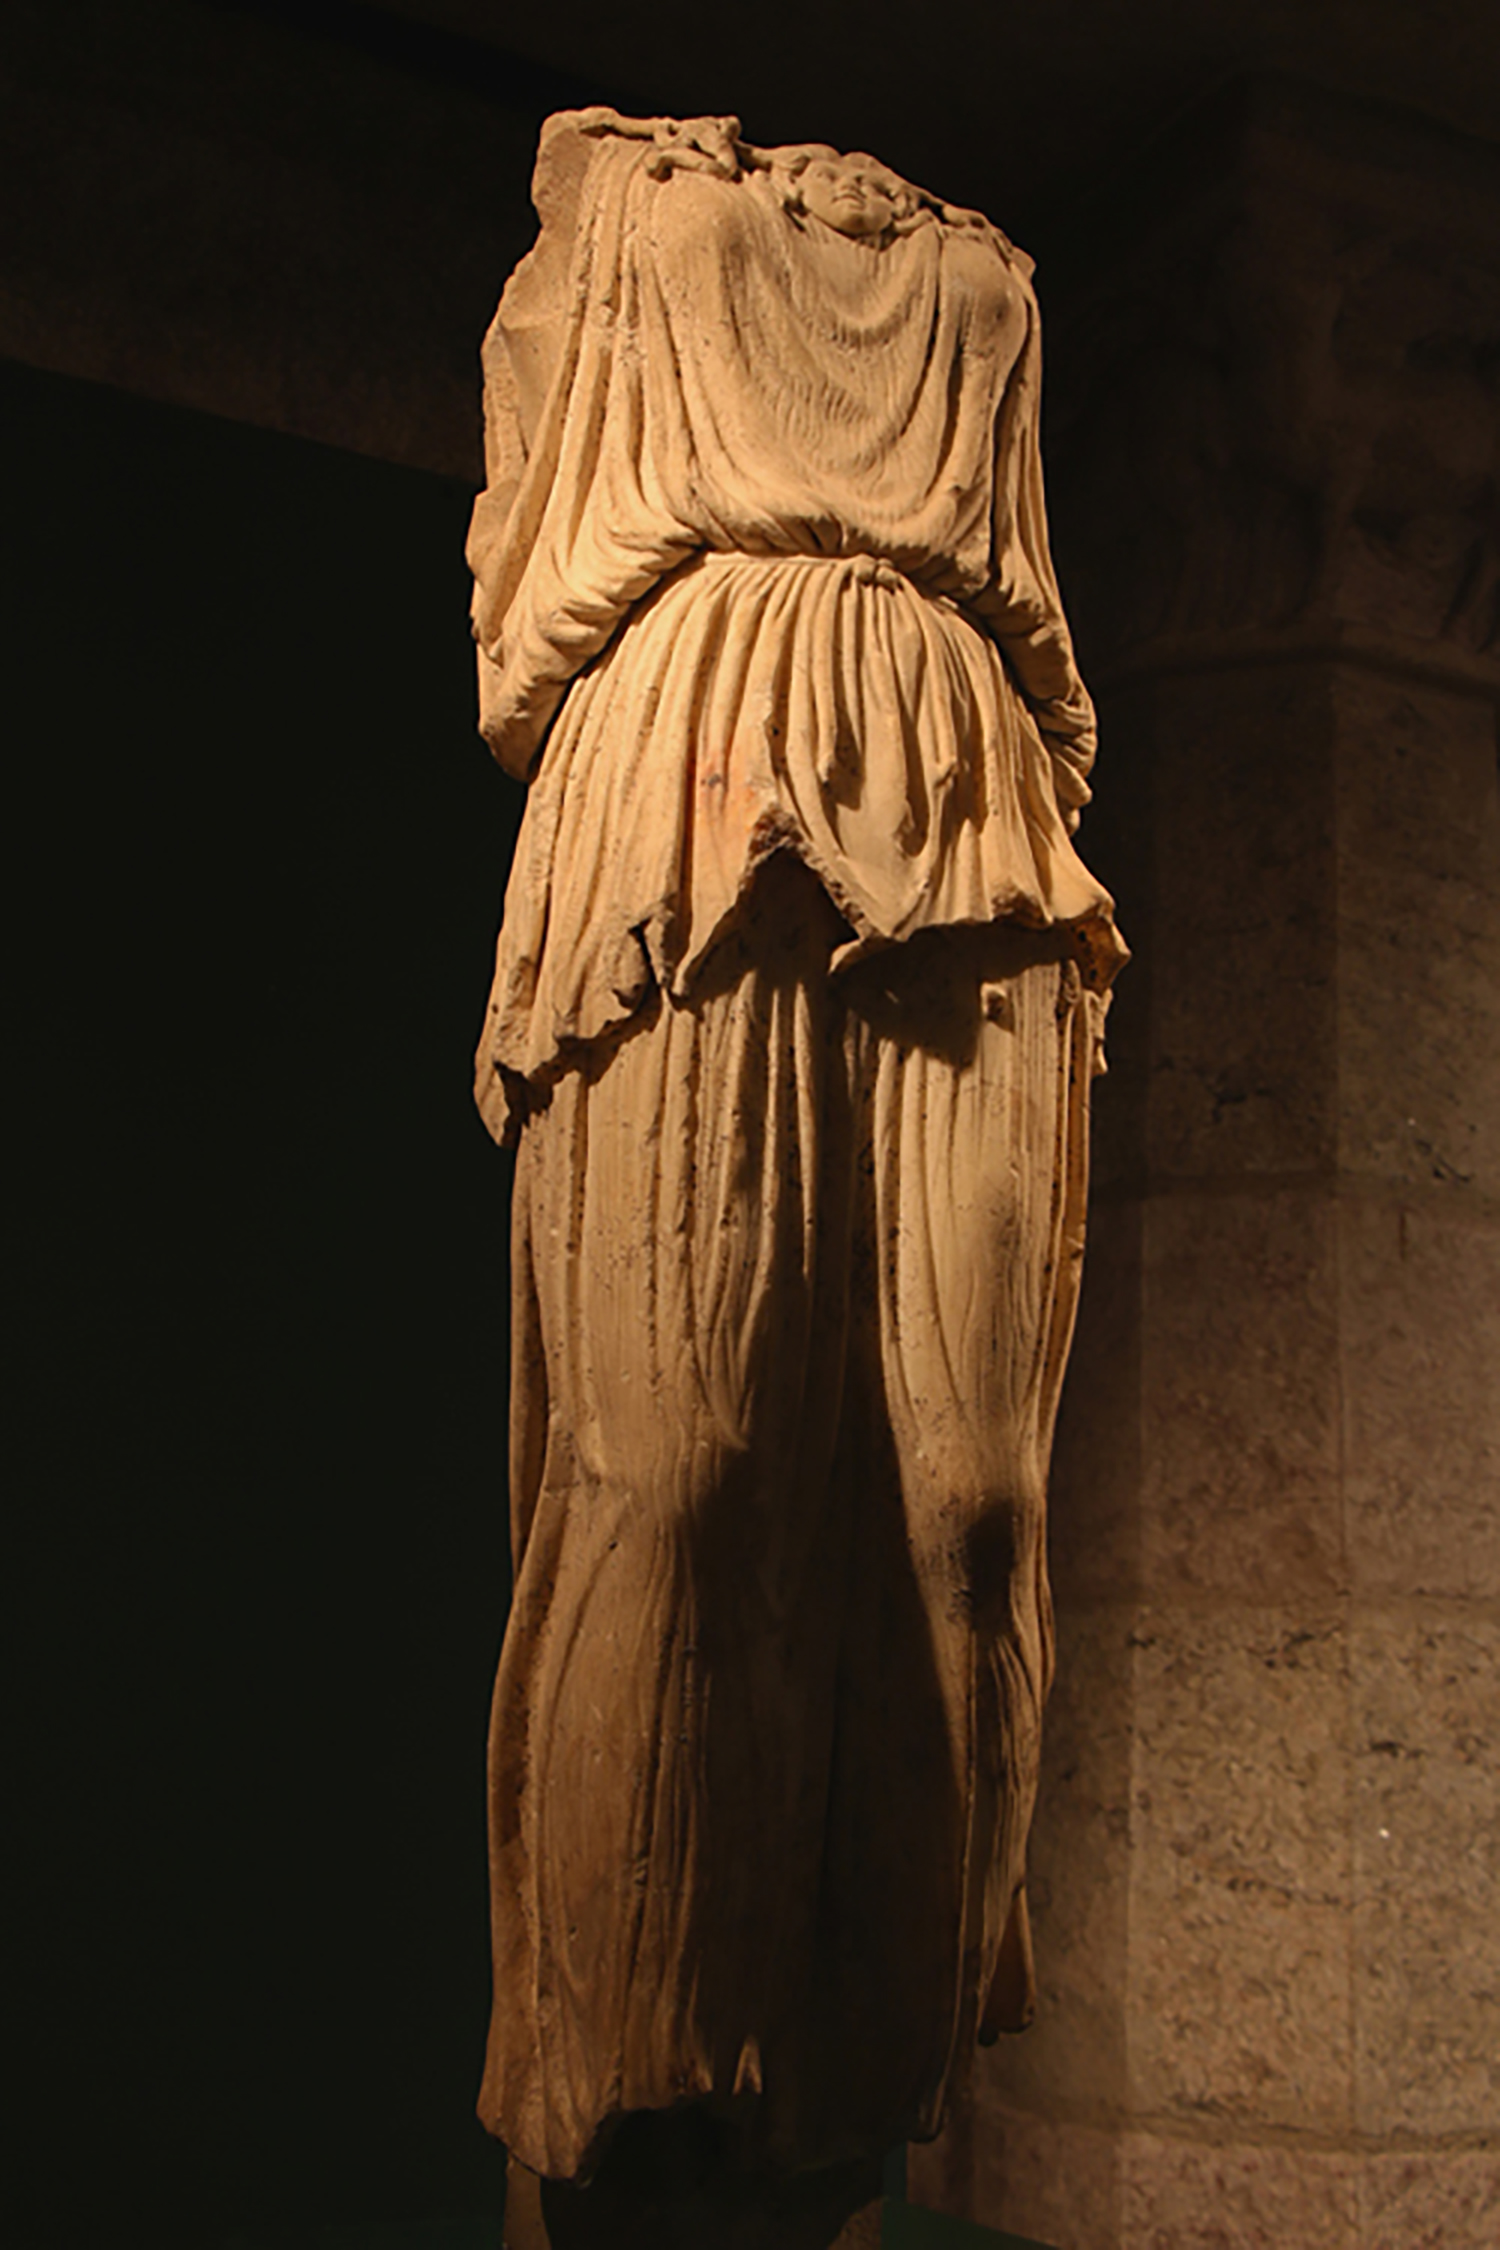 Figure 1: Full View of Statue.